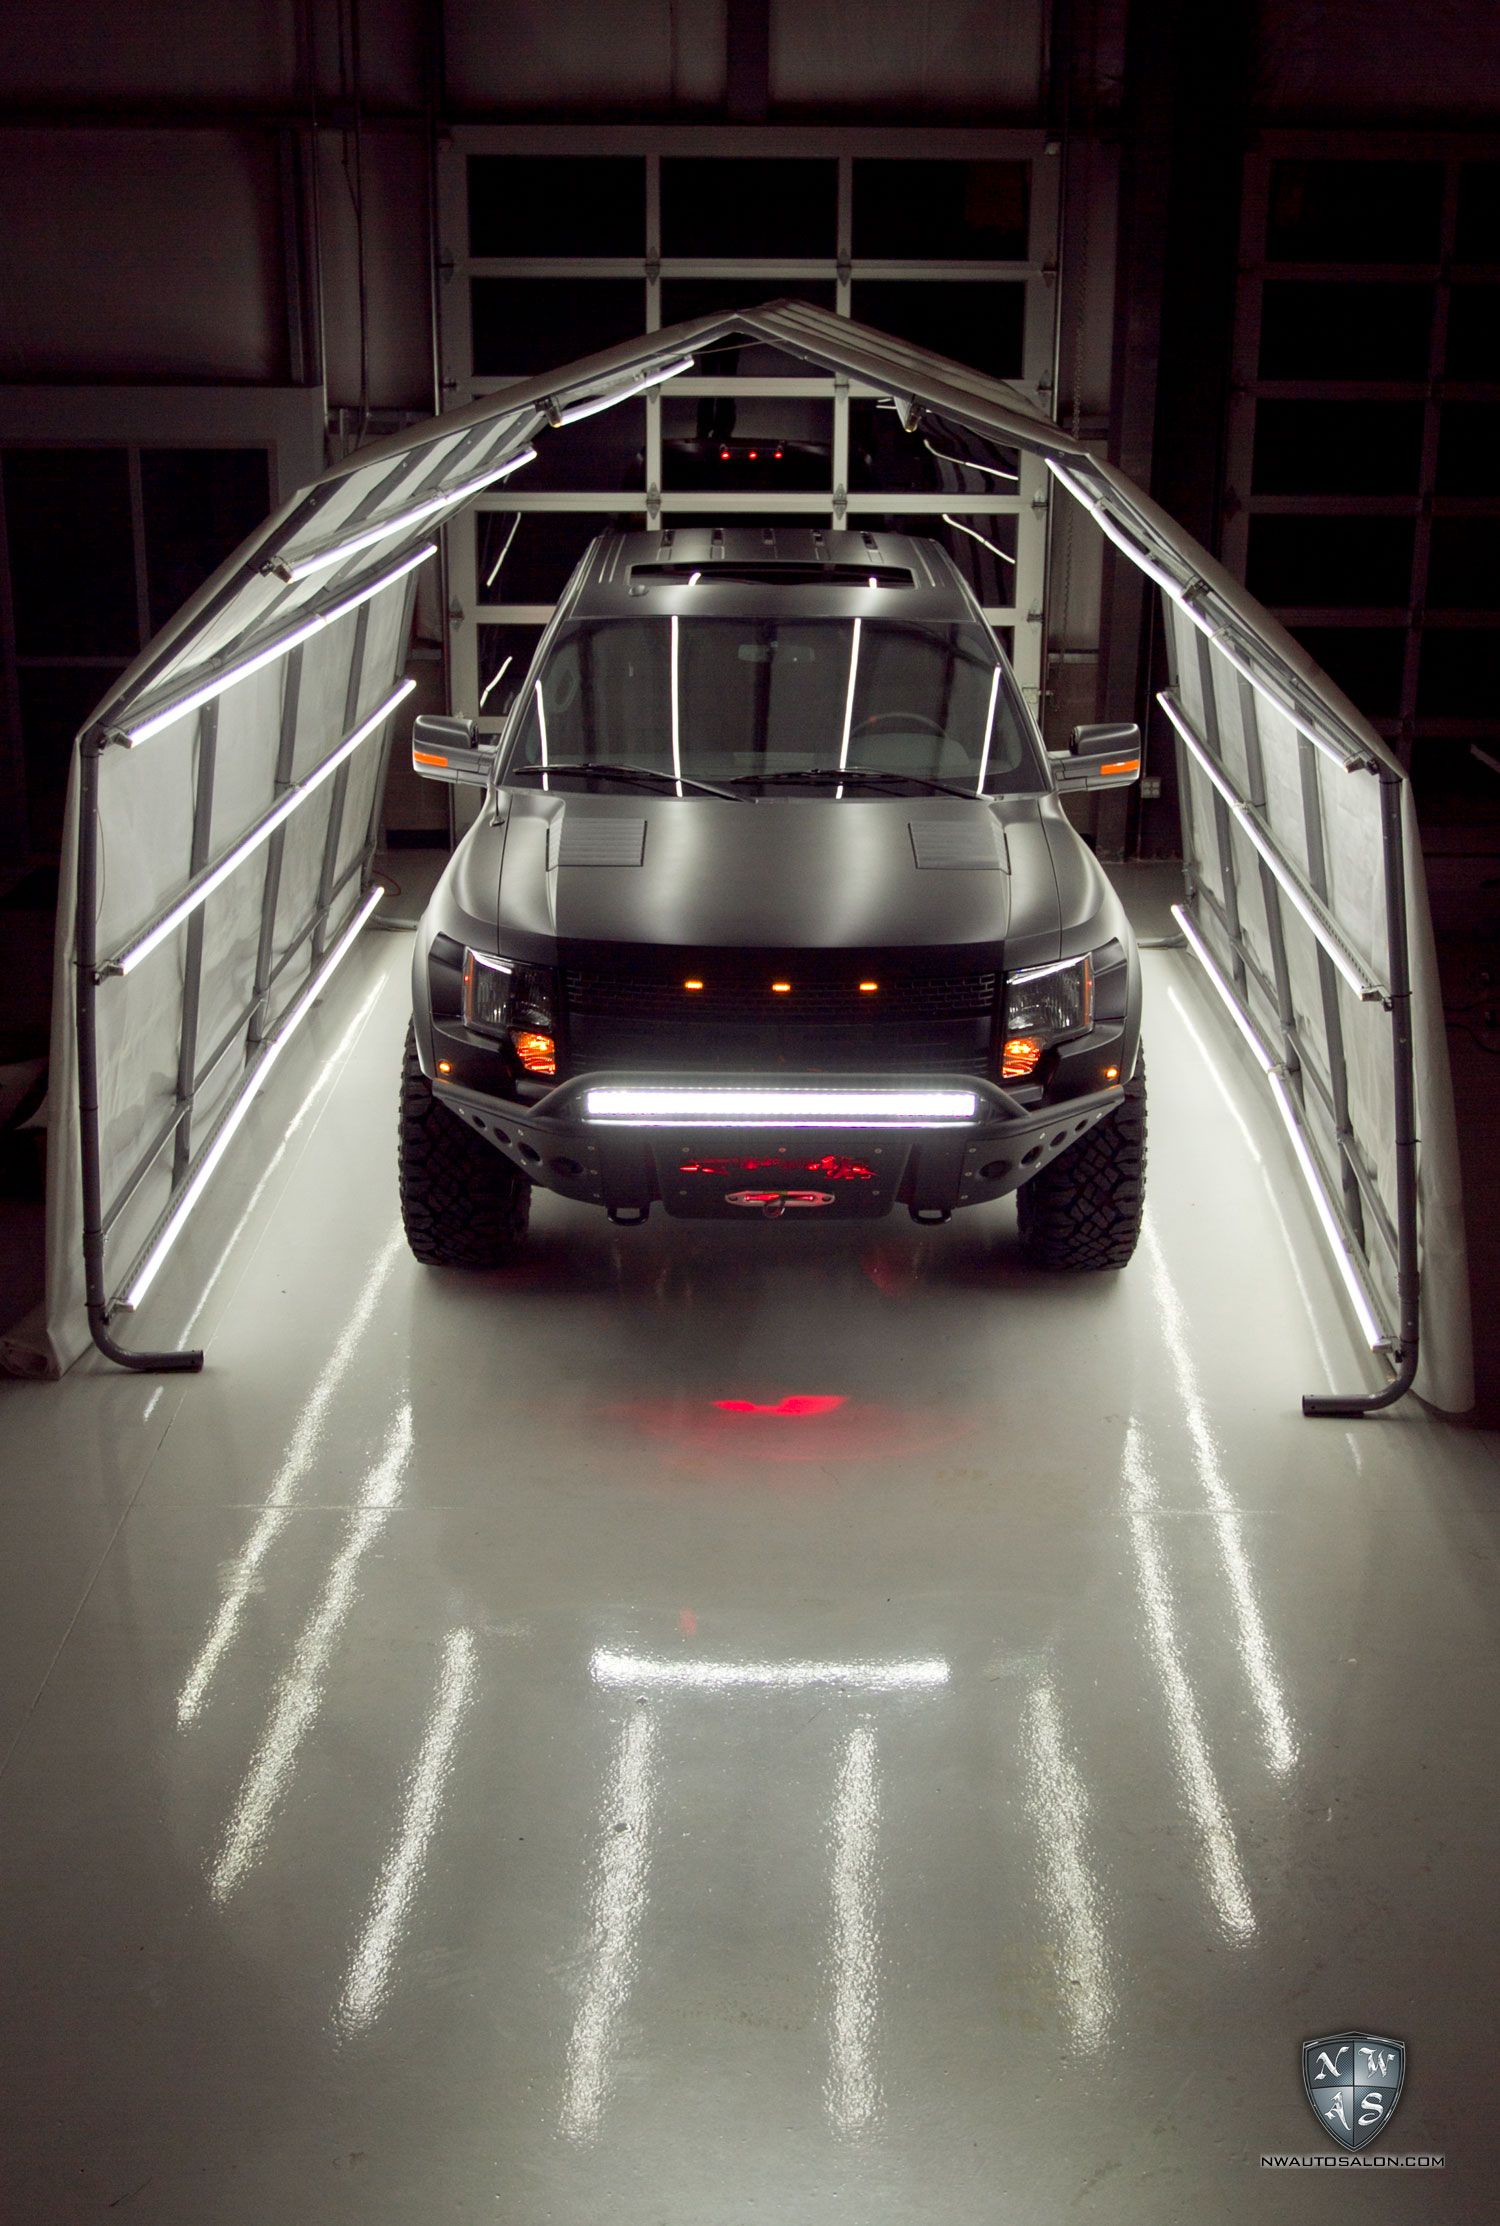 Ford Svt Raptor In The Light Tunnel At Northwest Auto Salon After